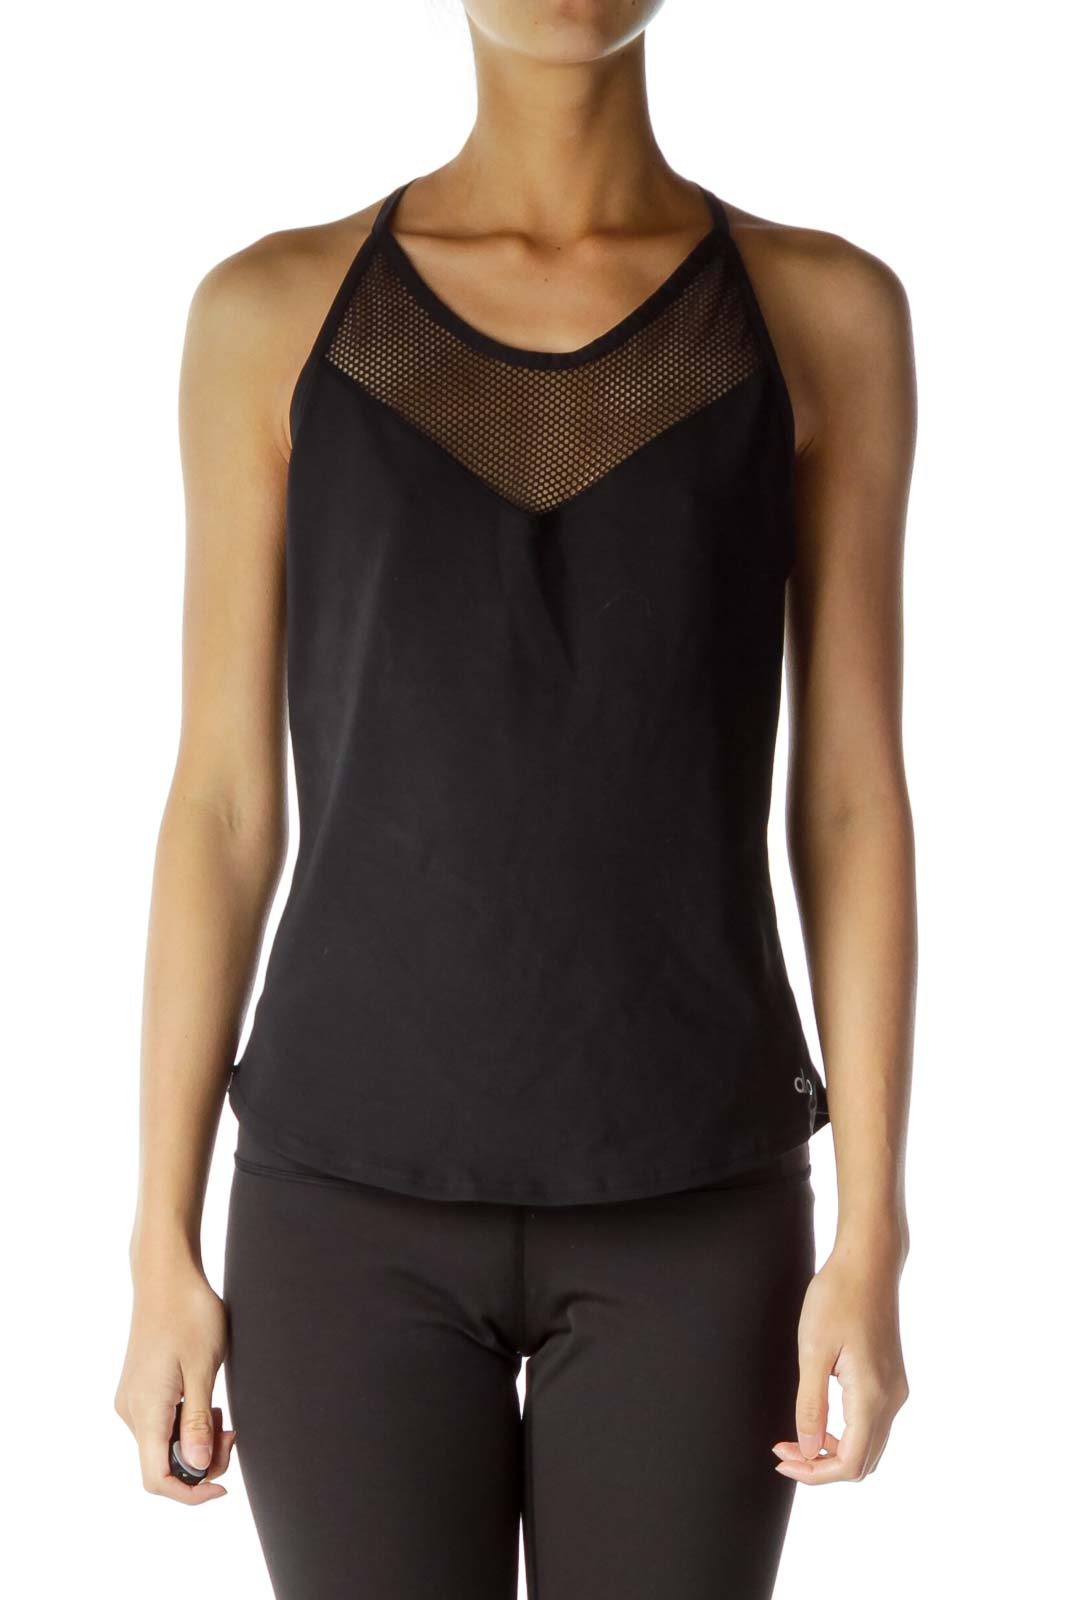 Black Fishnet Fitted Sports Top